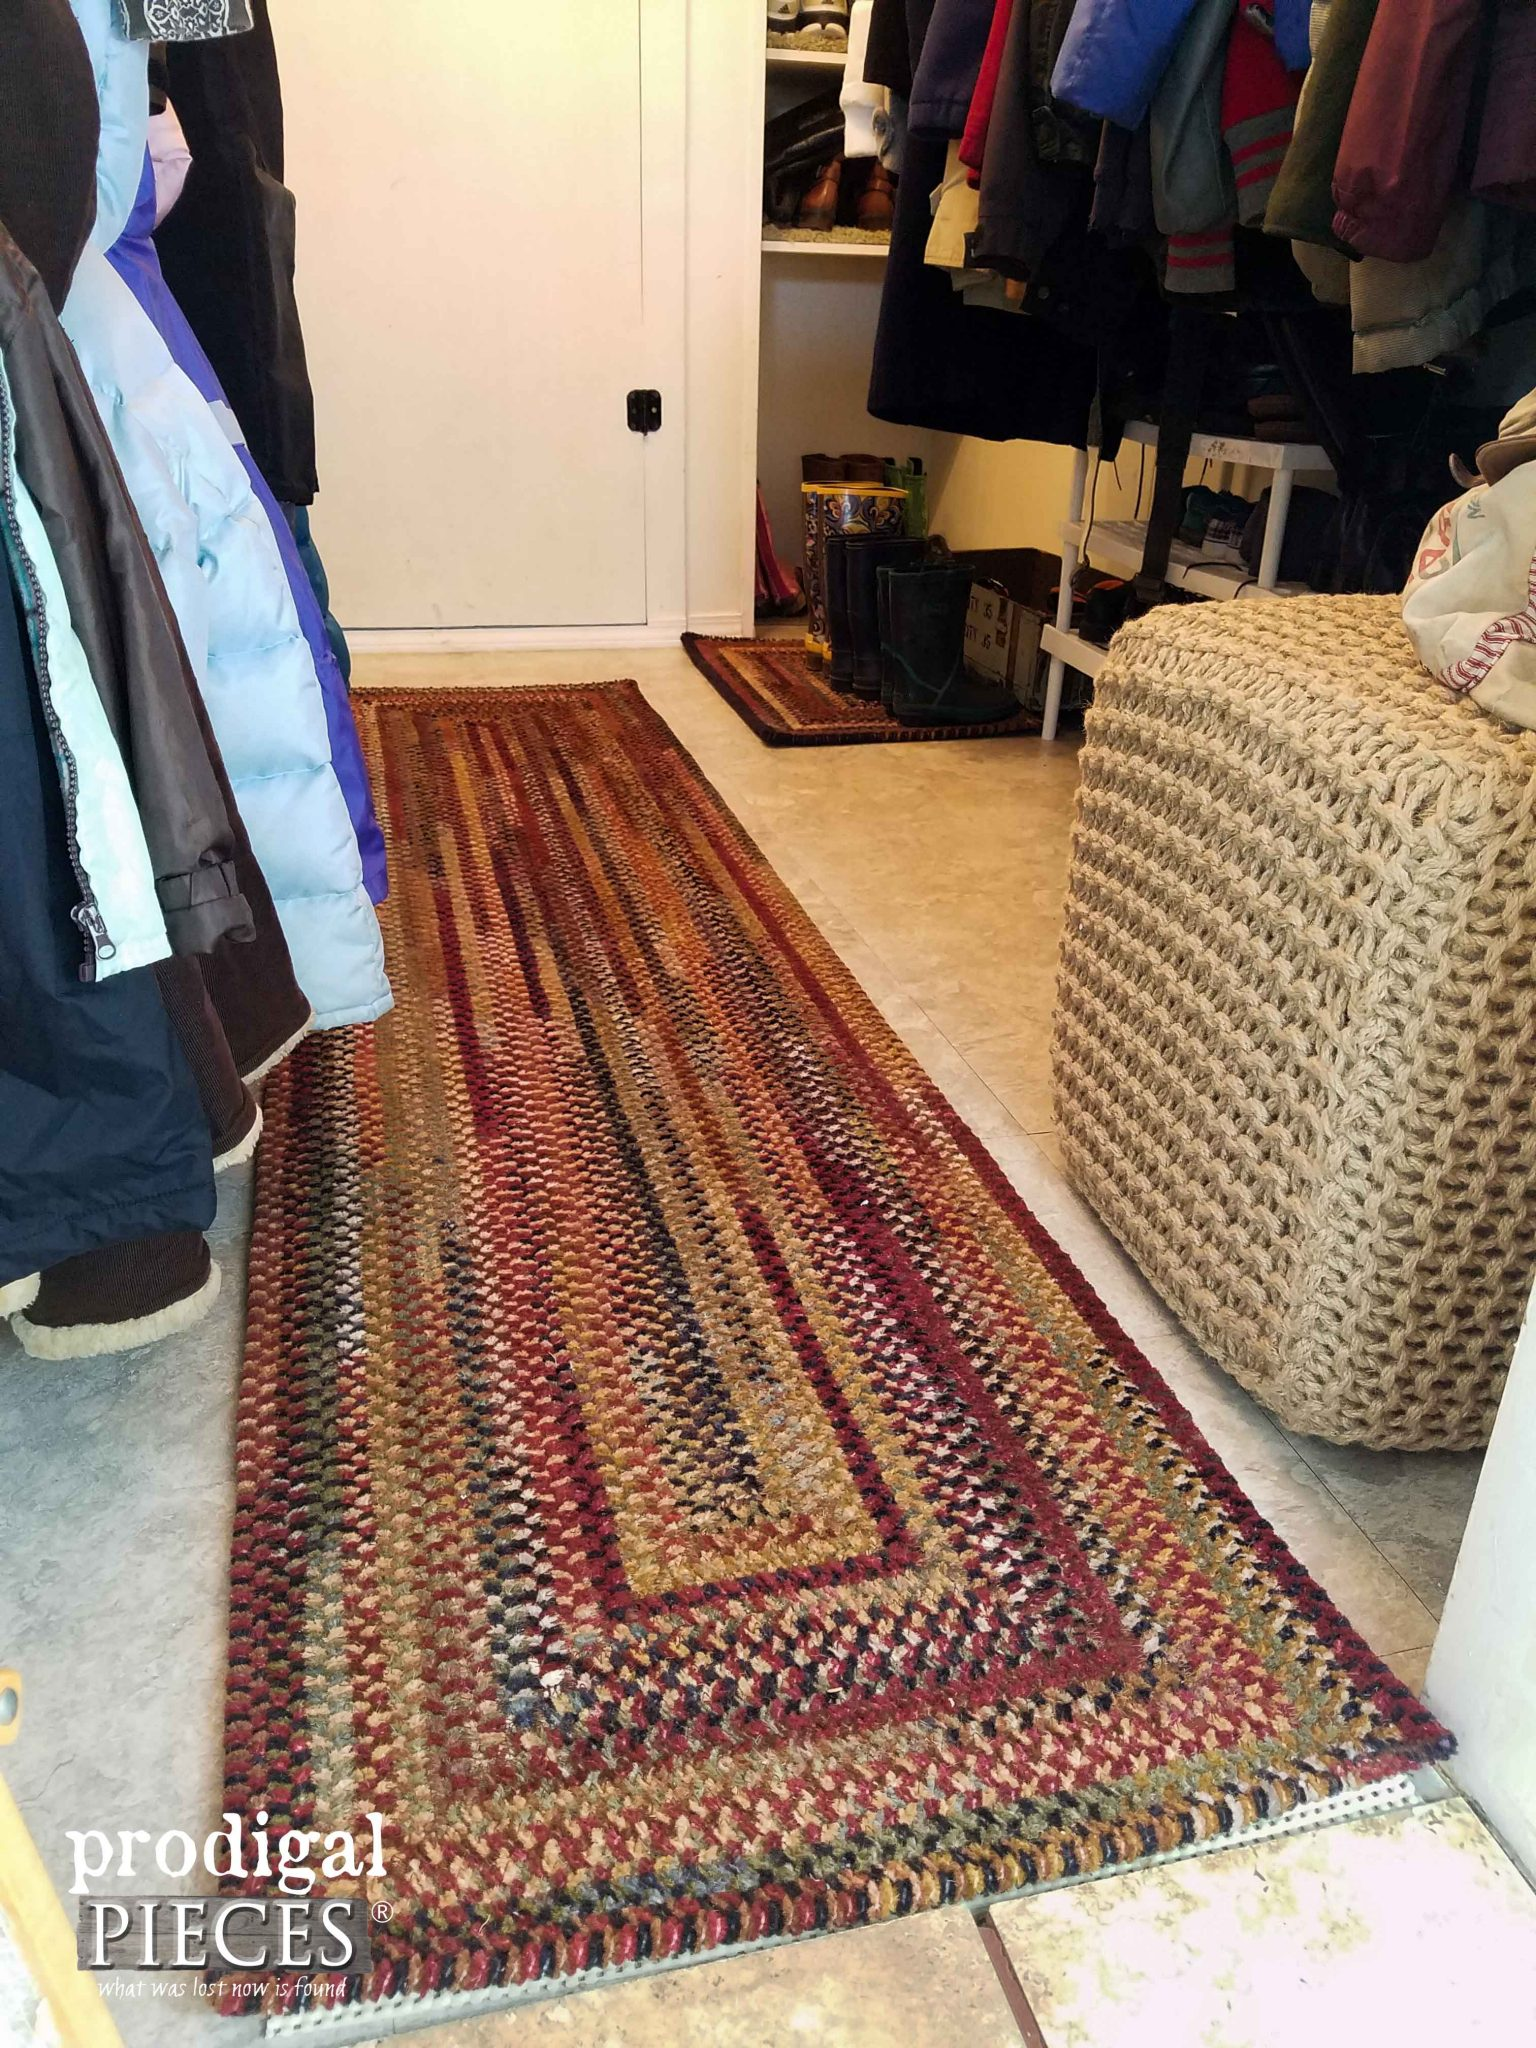 Braided Rug Runner for Mudroom | Prodigal Pieces | prodigalpieces.com